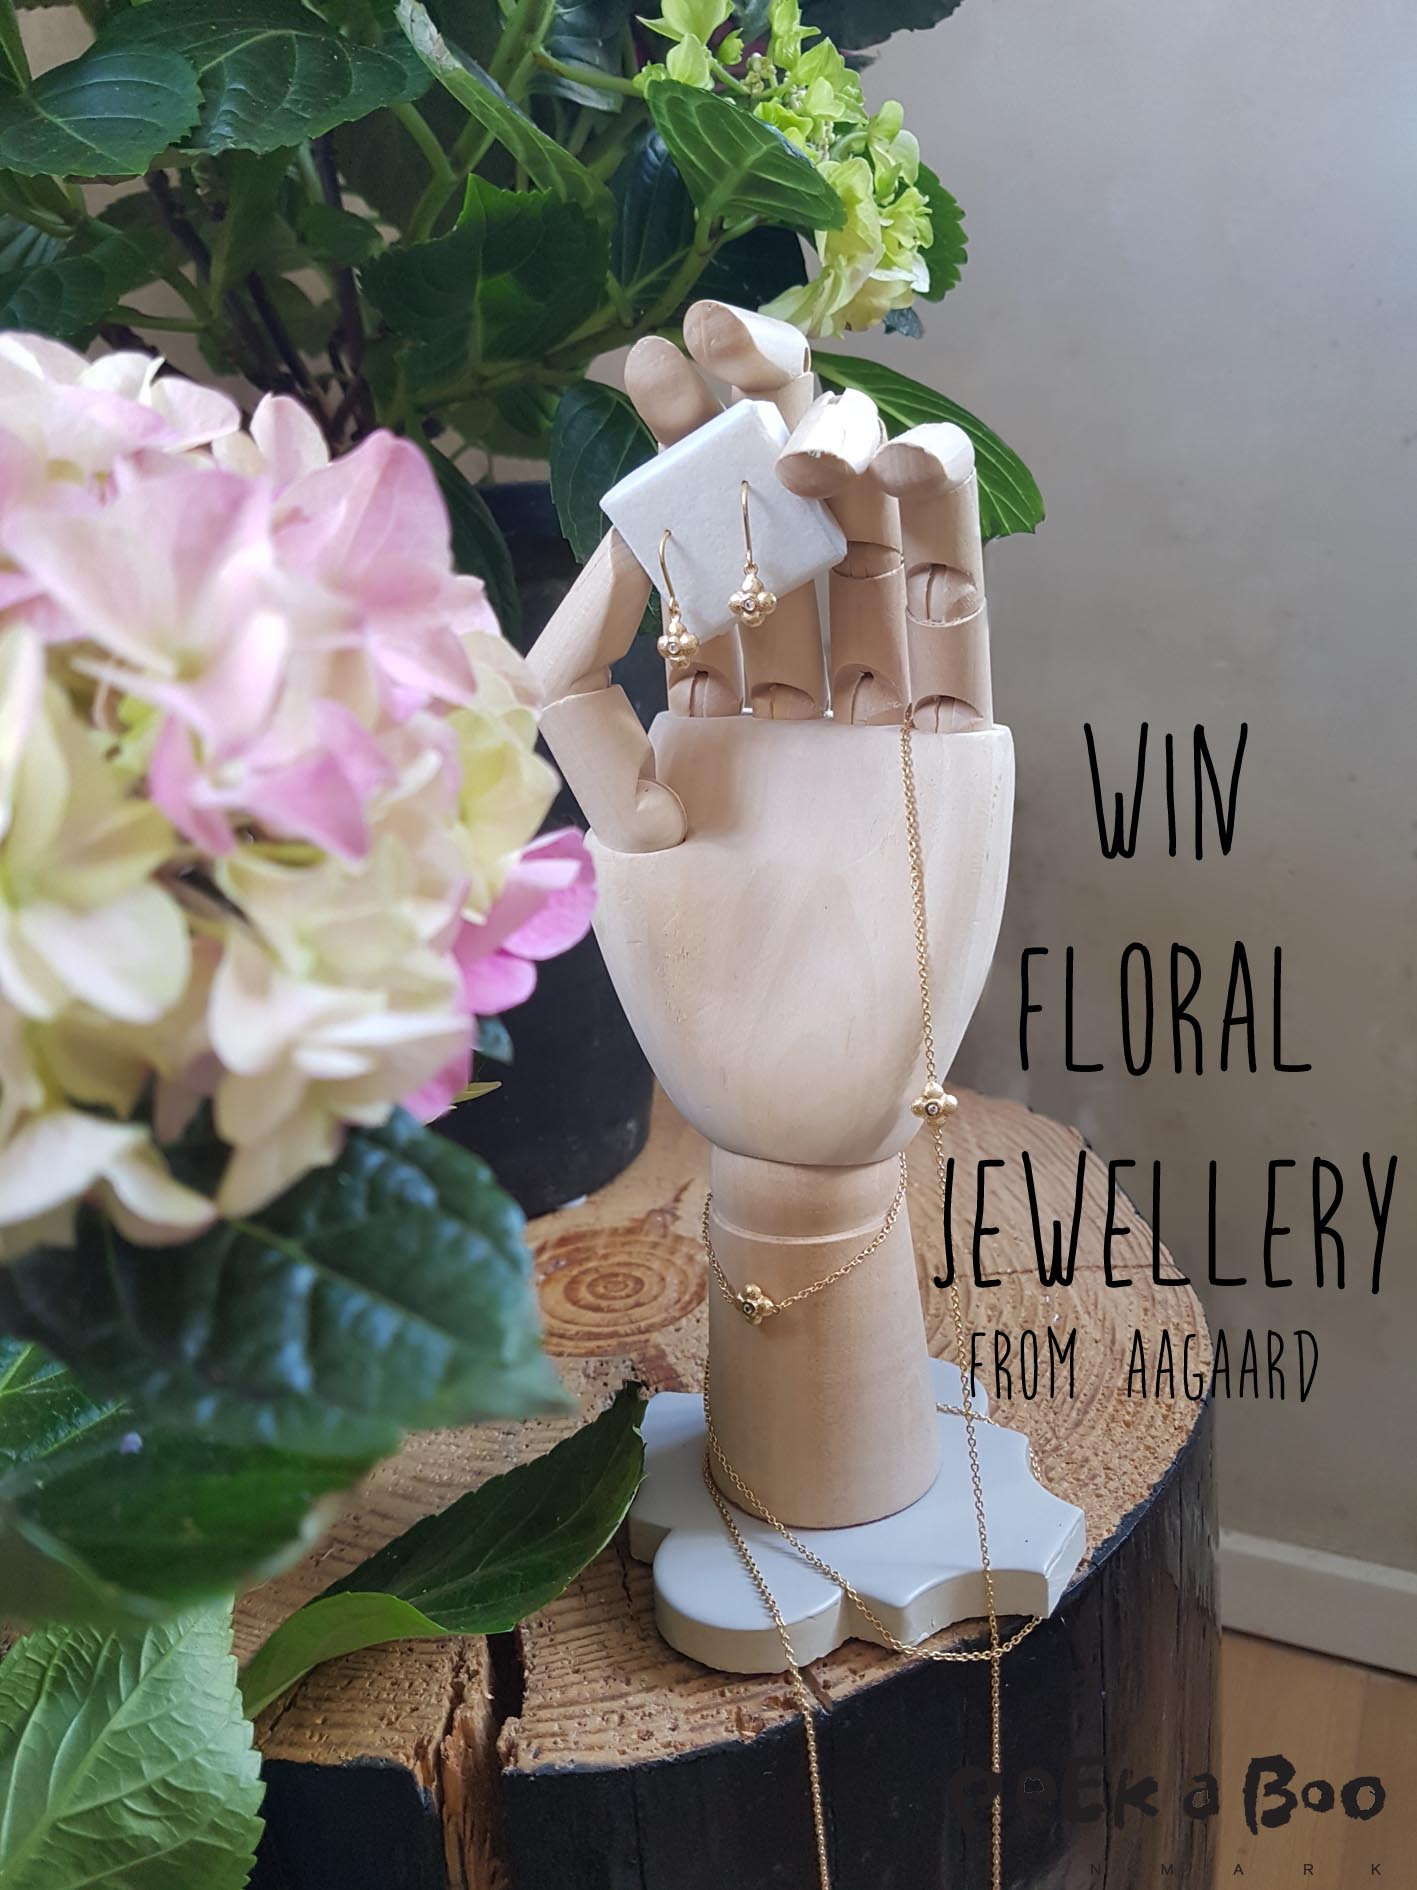 Win these beautiful jewellery from by Aagaard.